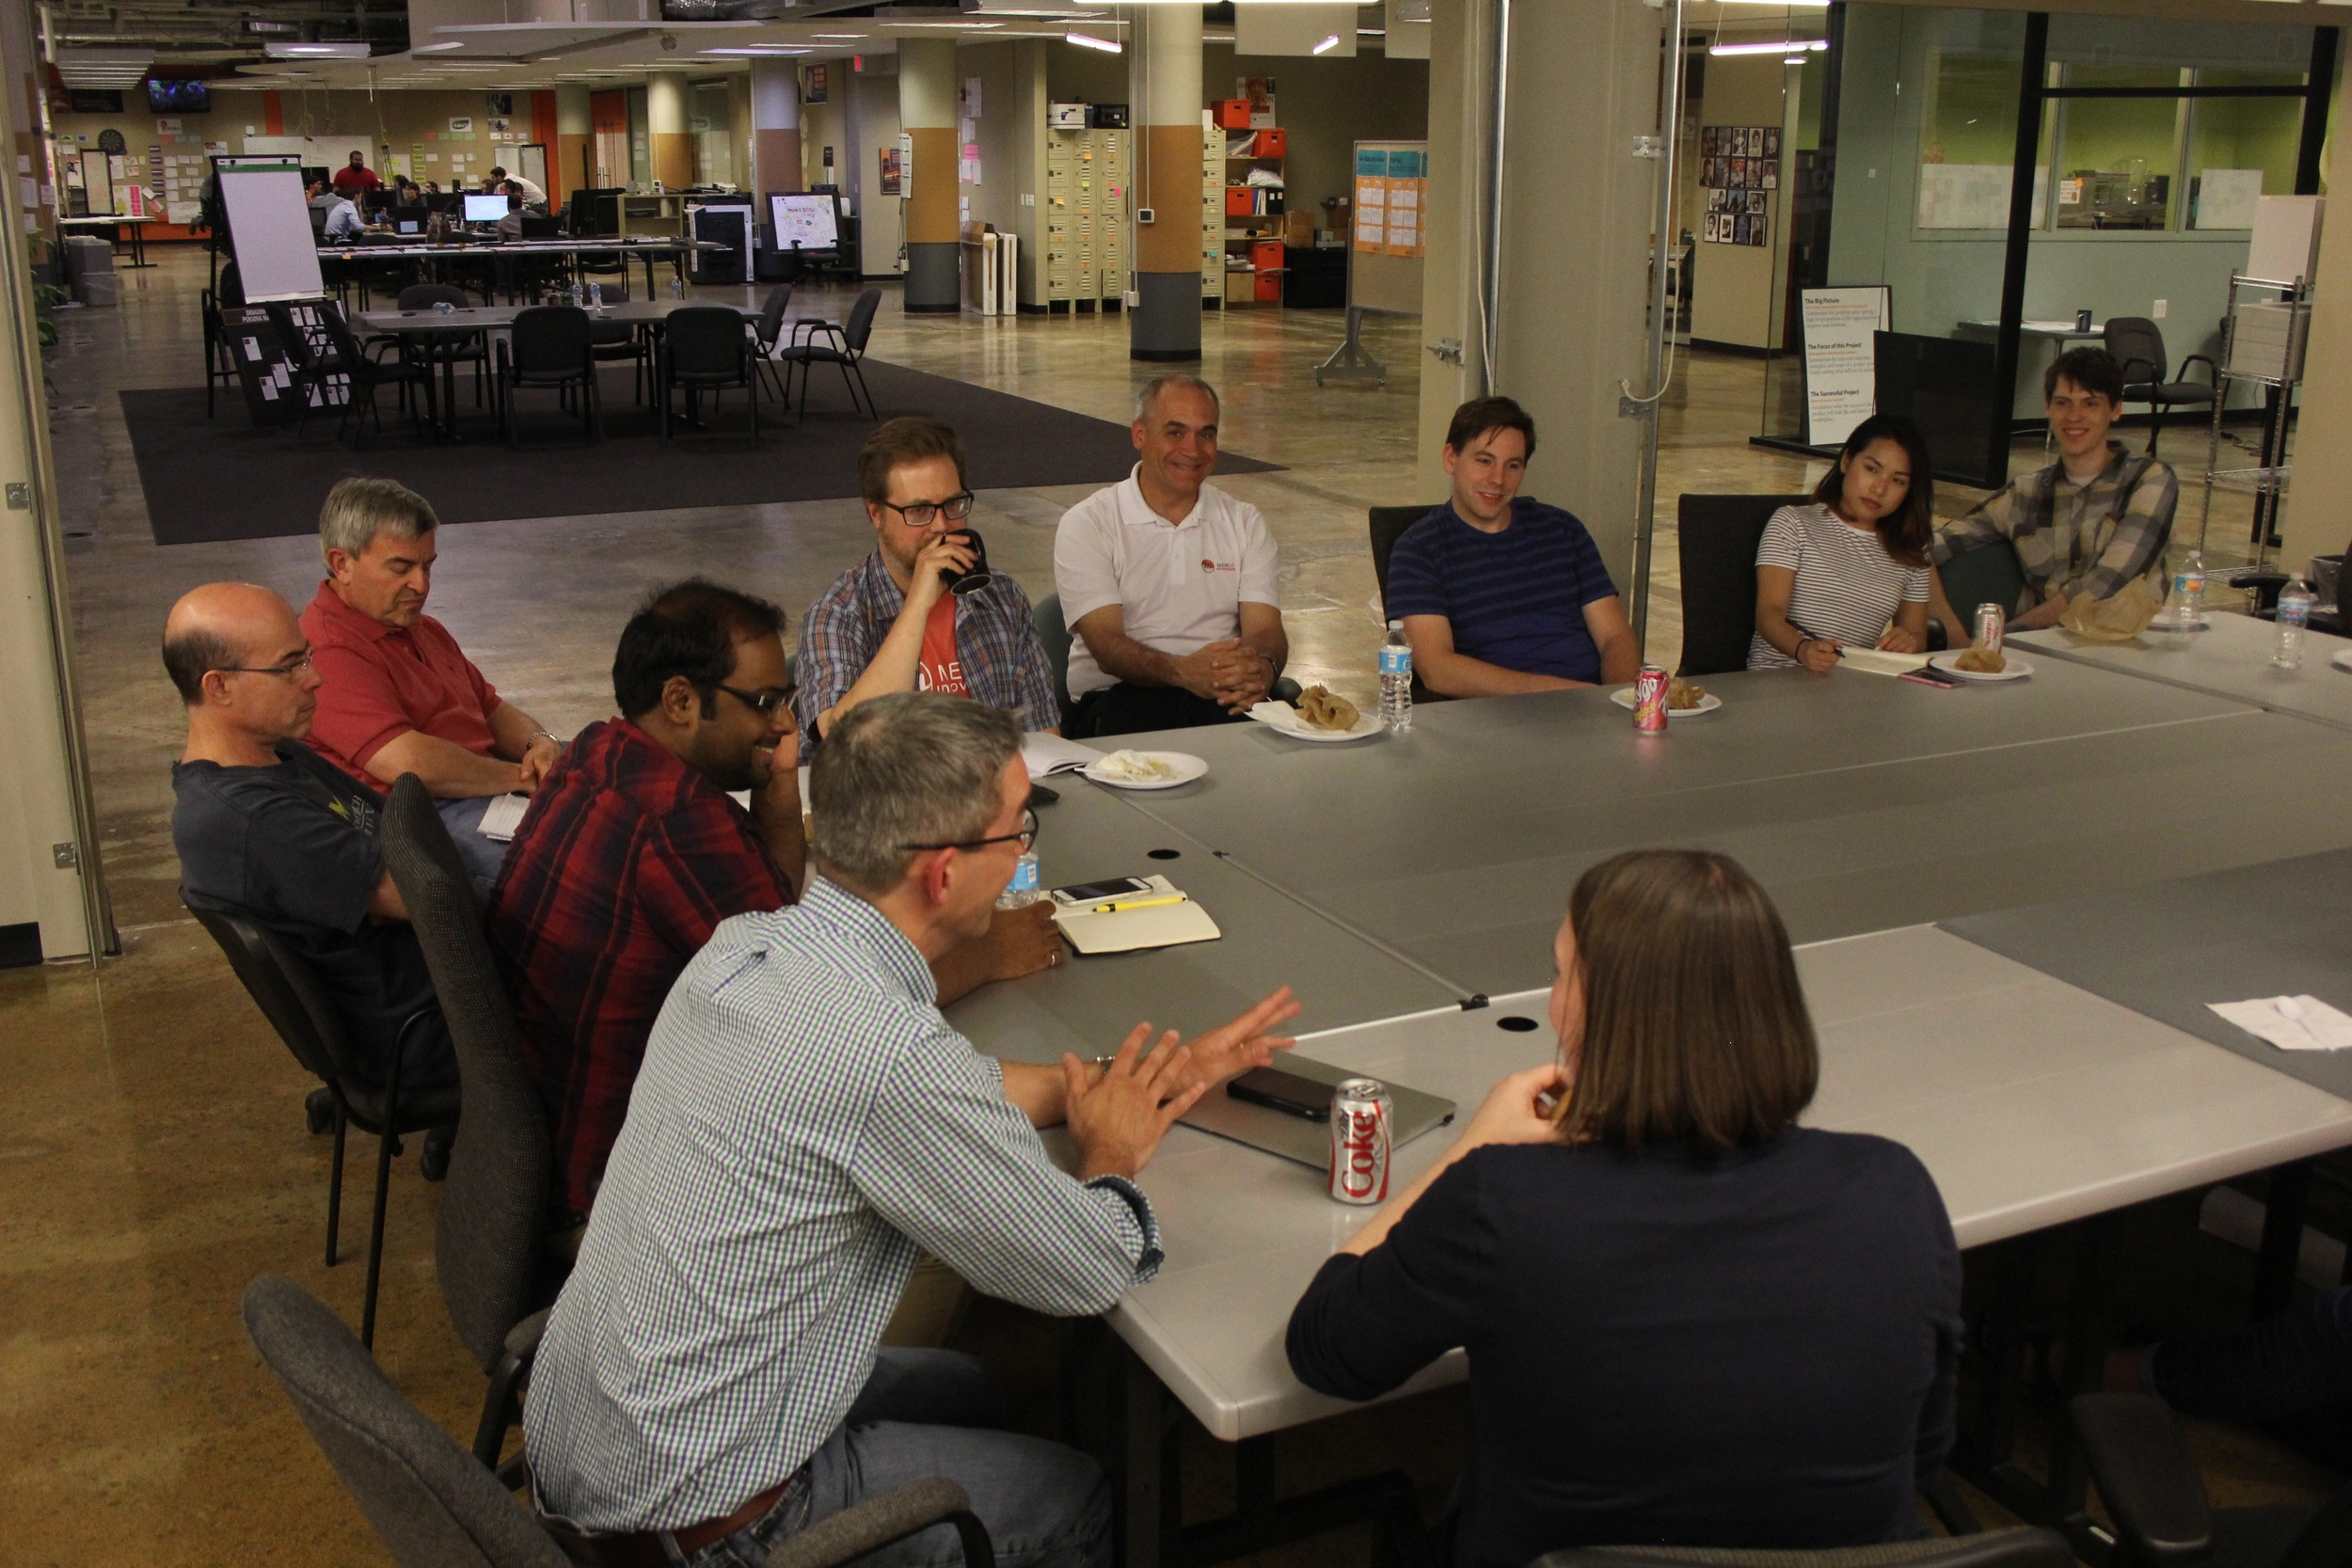 The Monthly Founders' Meeting supports community and coaching among Menlo leadership and startup founders as well as Startup Garage alumni and community partners